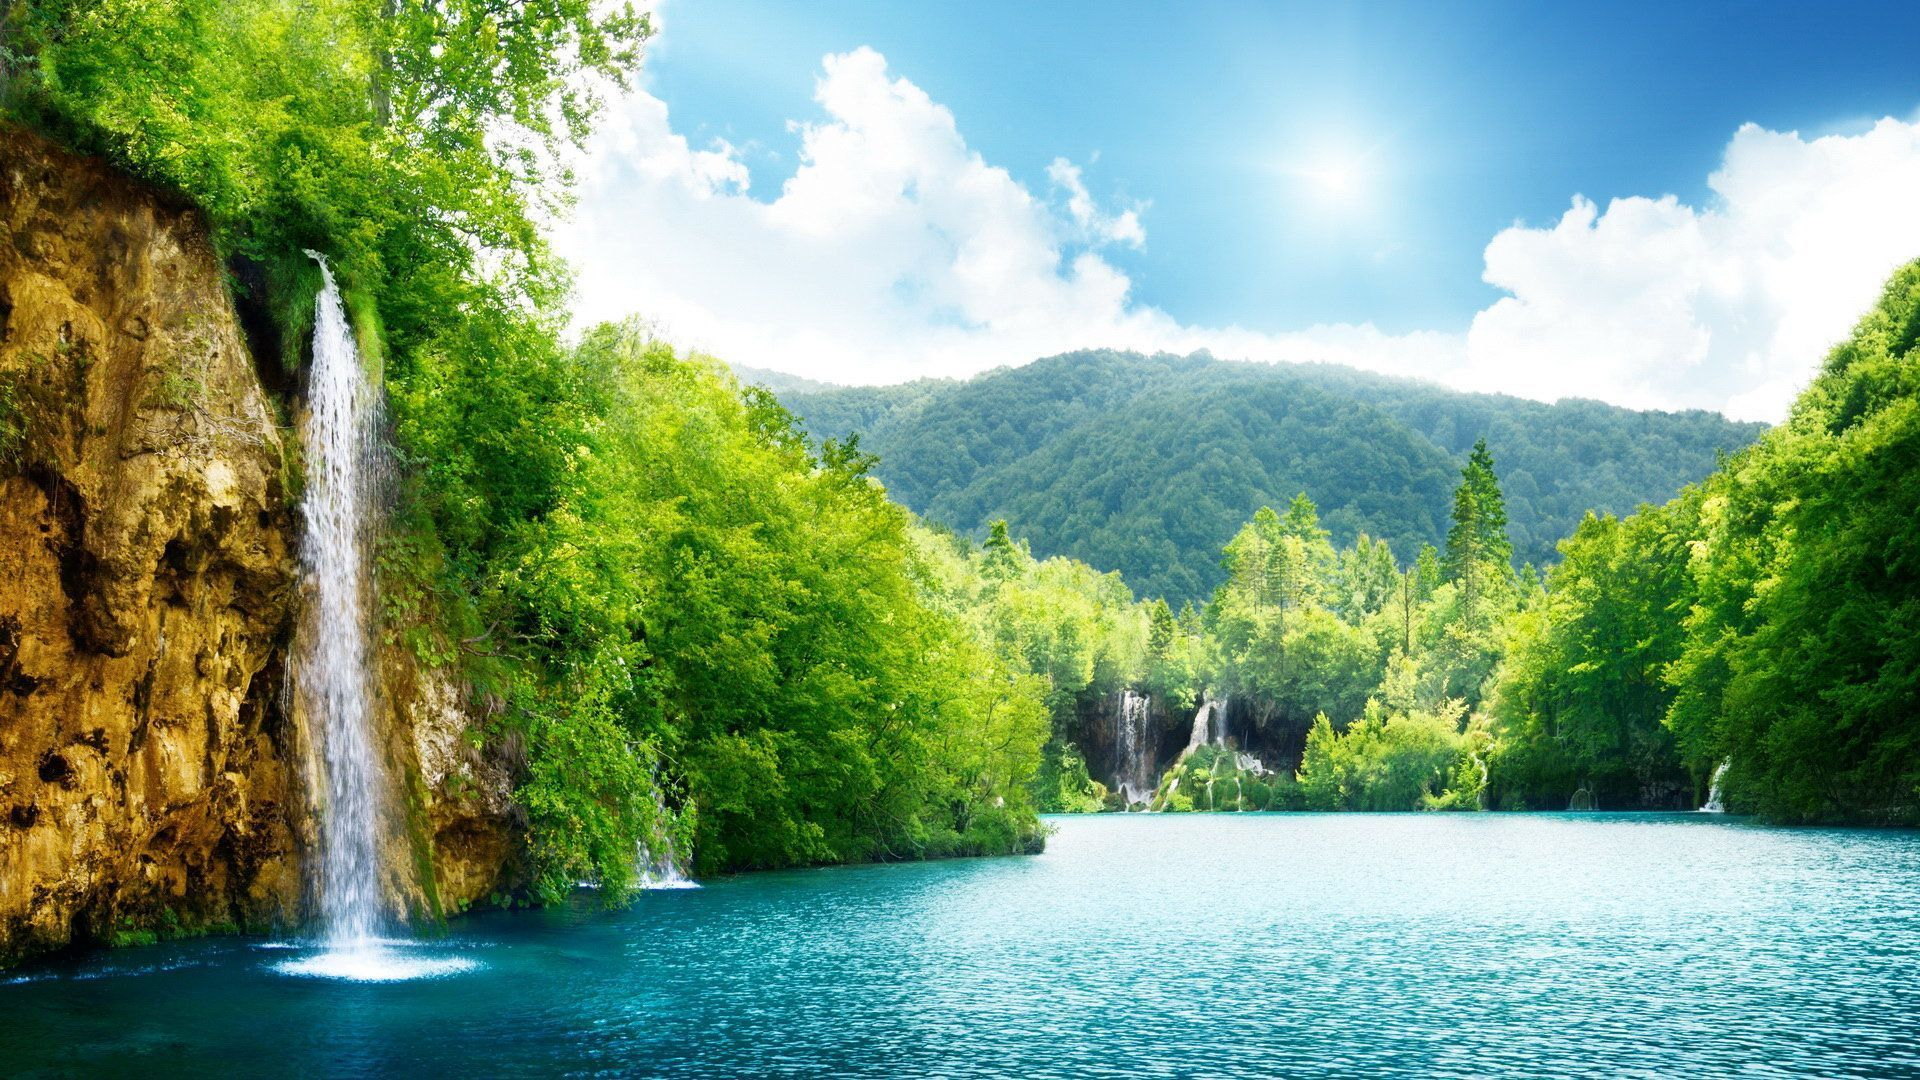 Awesome Animated Wallpapers Scenery Image Clouds Green Image Tree Waterfall